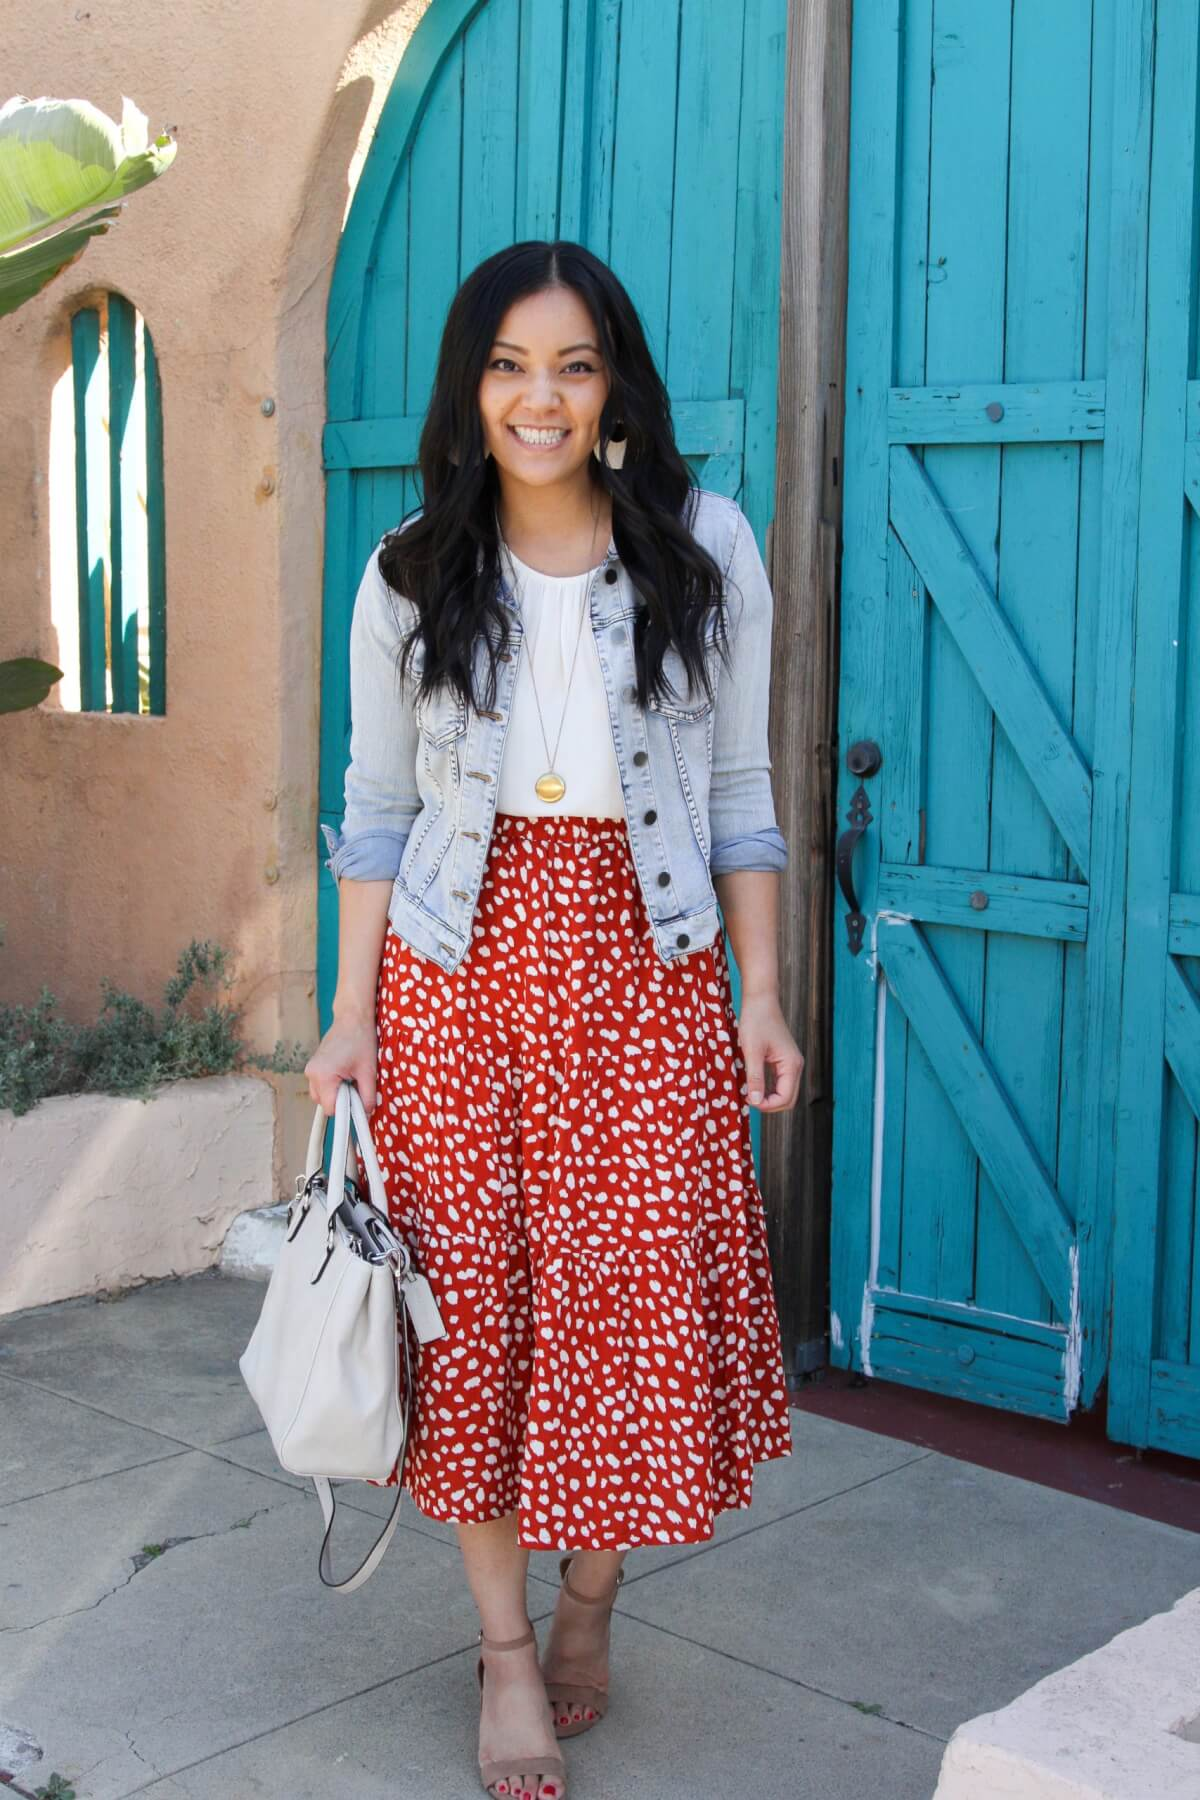 Dressy Casual Outfit: solid-colored top white blouse + red dot ruffle midi skirt + denim jacket + tan heeled sandals + gold pendant necklace + gray handbag